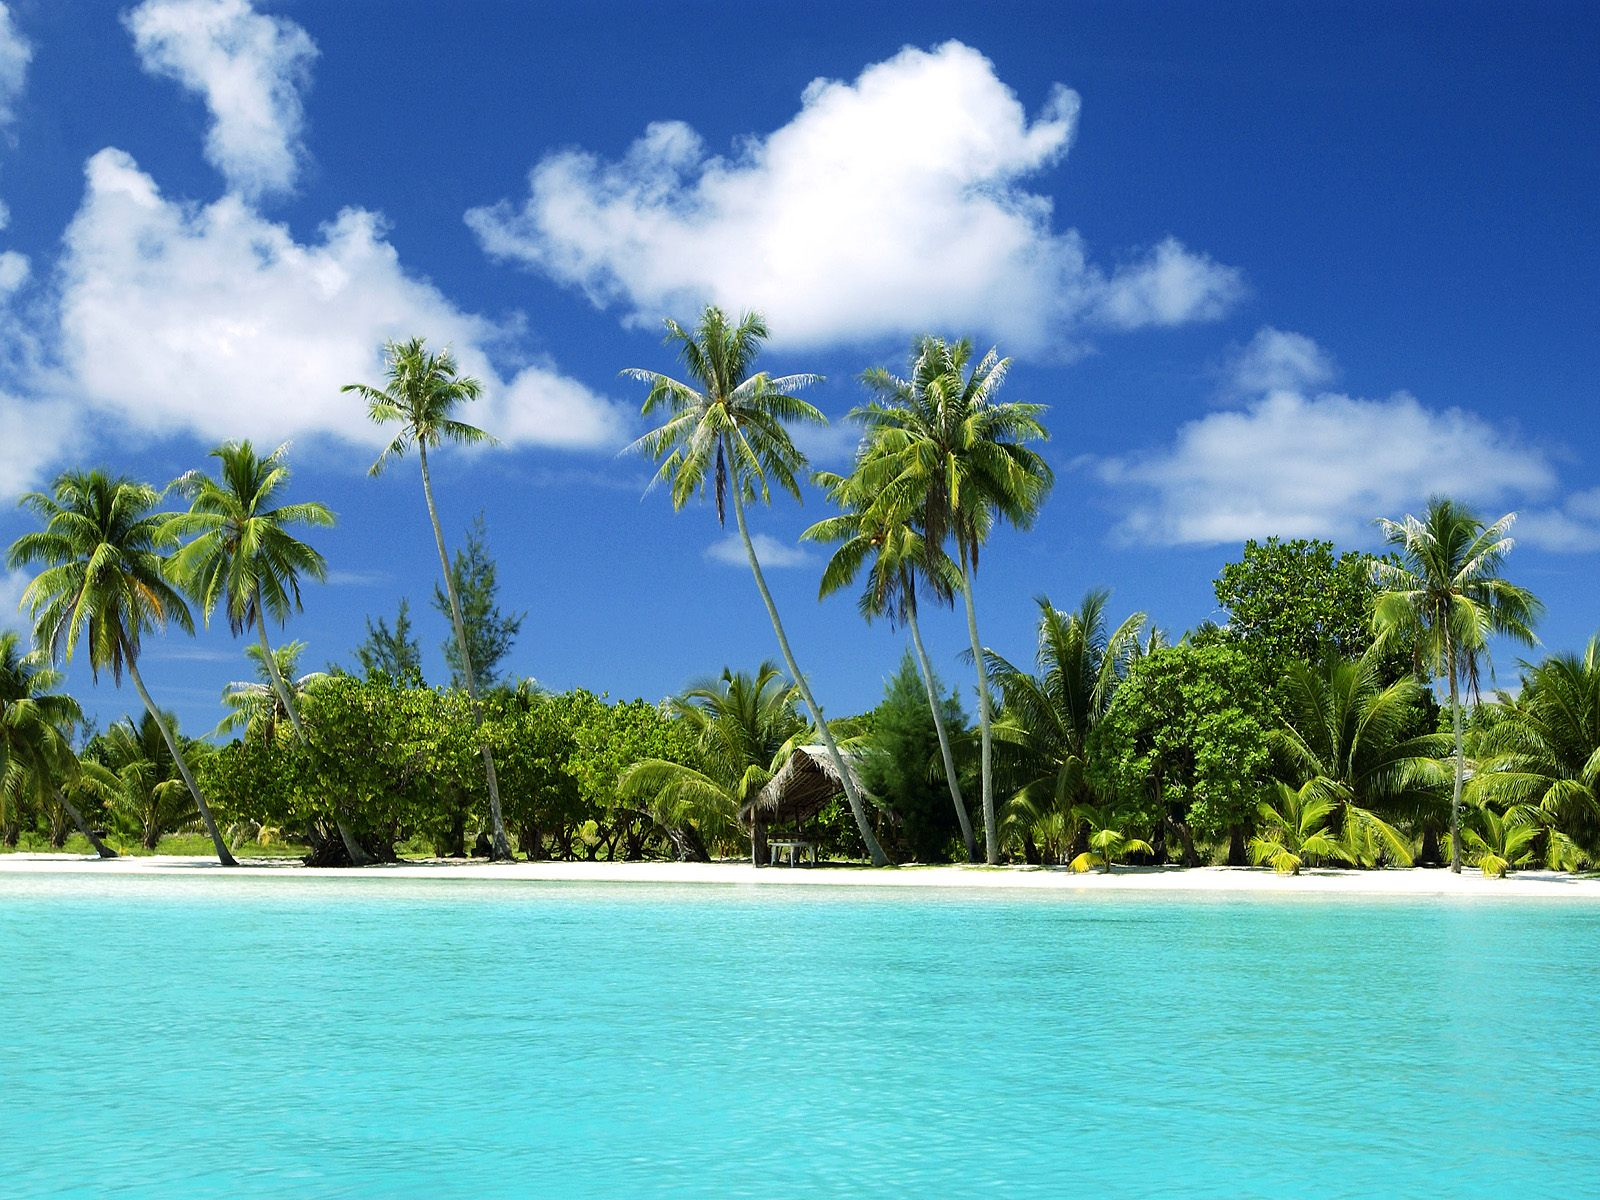 tropical beach scenes wallpaper which is under the beach wallpapers 1600x1200